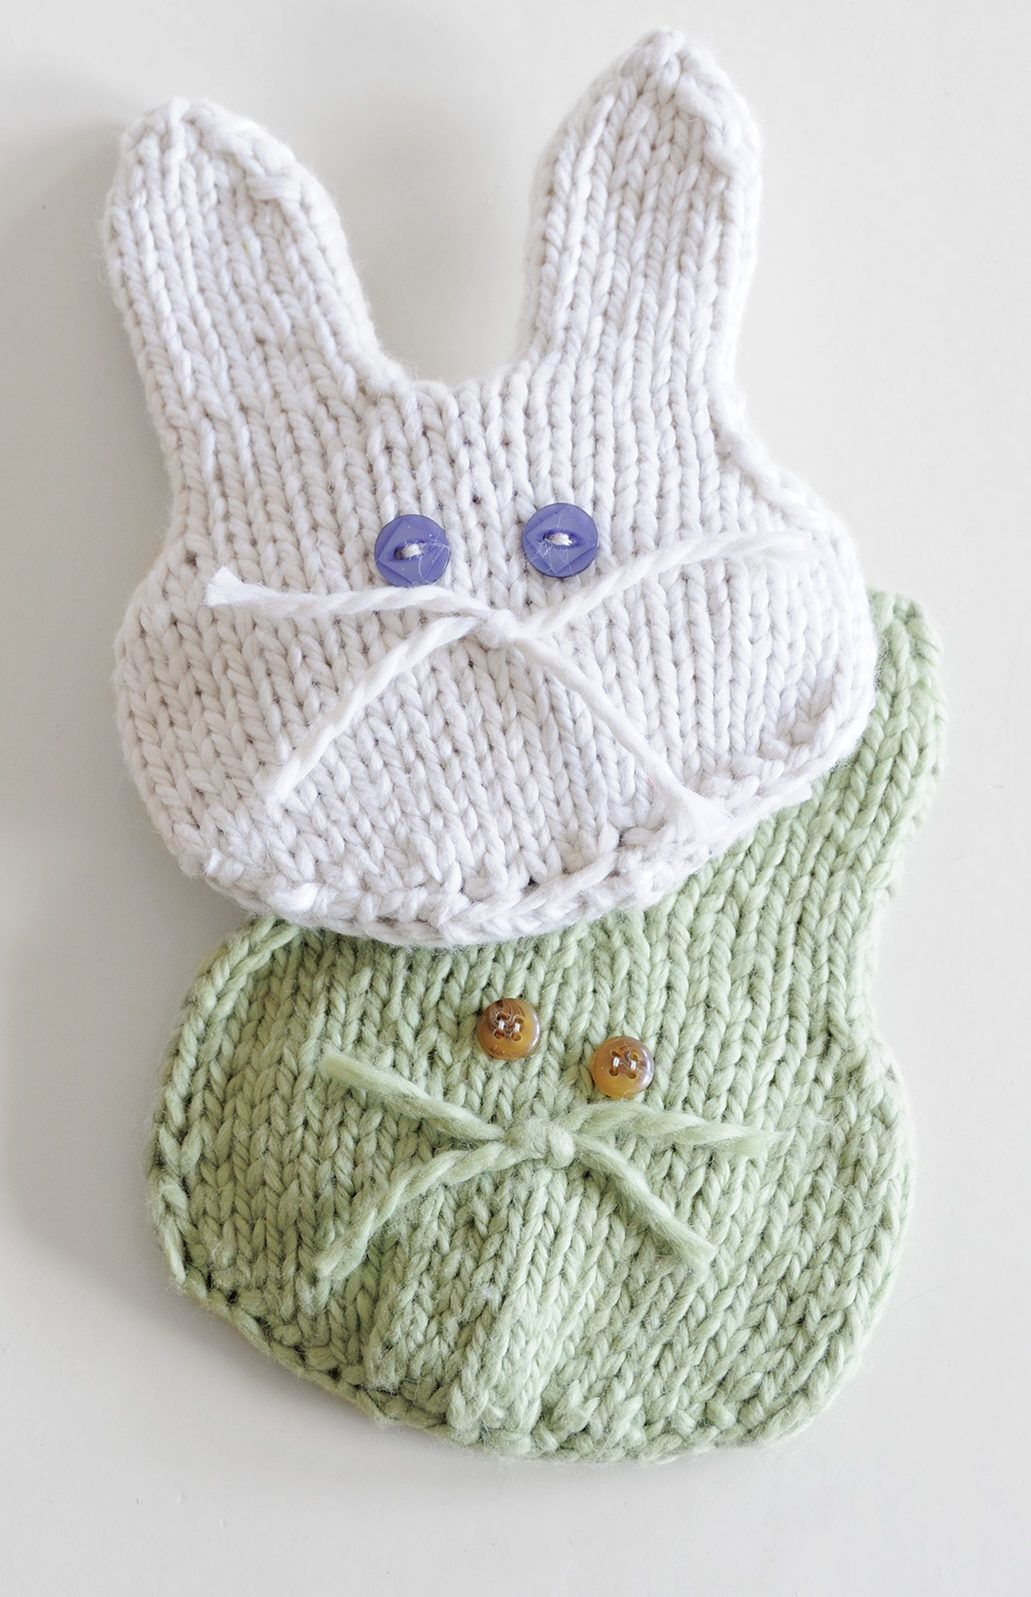 Knitting pattern for boo boo bunny ice pack cozy fun cozy cover knitting pattern for boo boo bunny ice pack cozy fun cozy cover for reusable bankloansurffo Choice Image